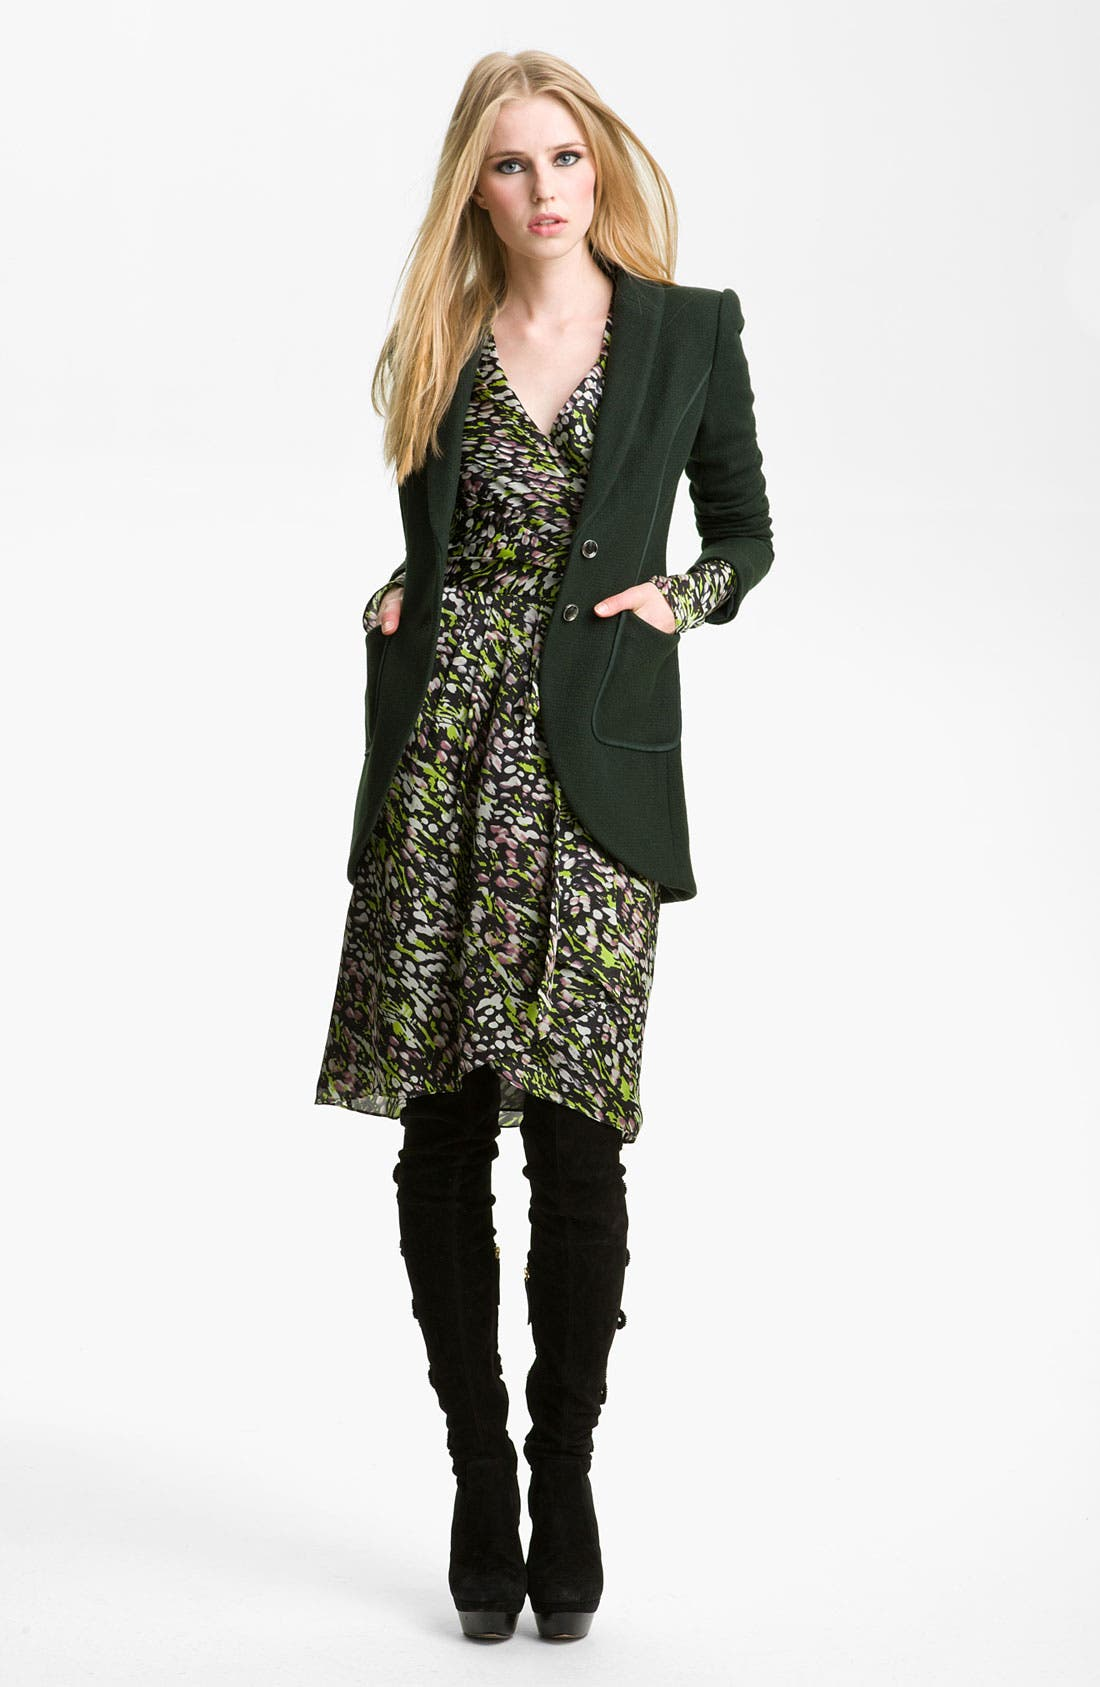 Alternate Image 1 Selected - Rachel Zoe 'Kenny' Cutaway Jacket